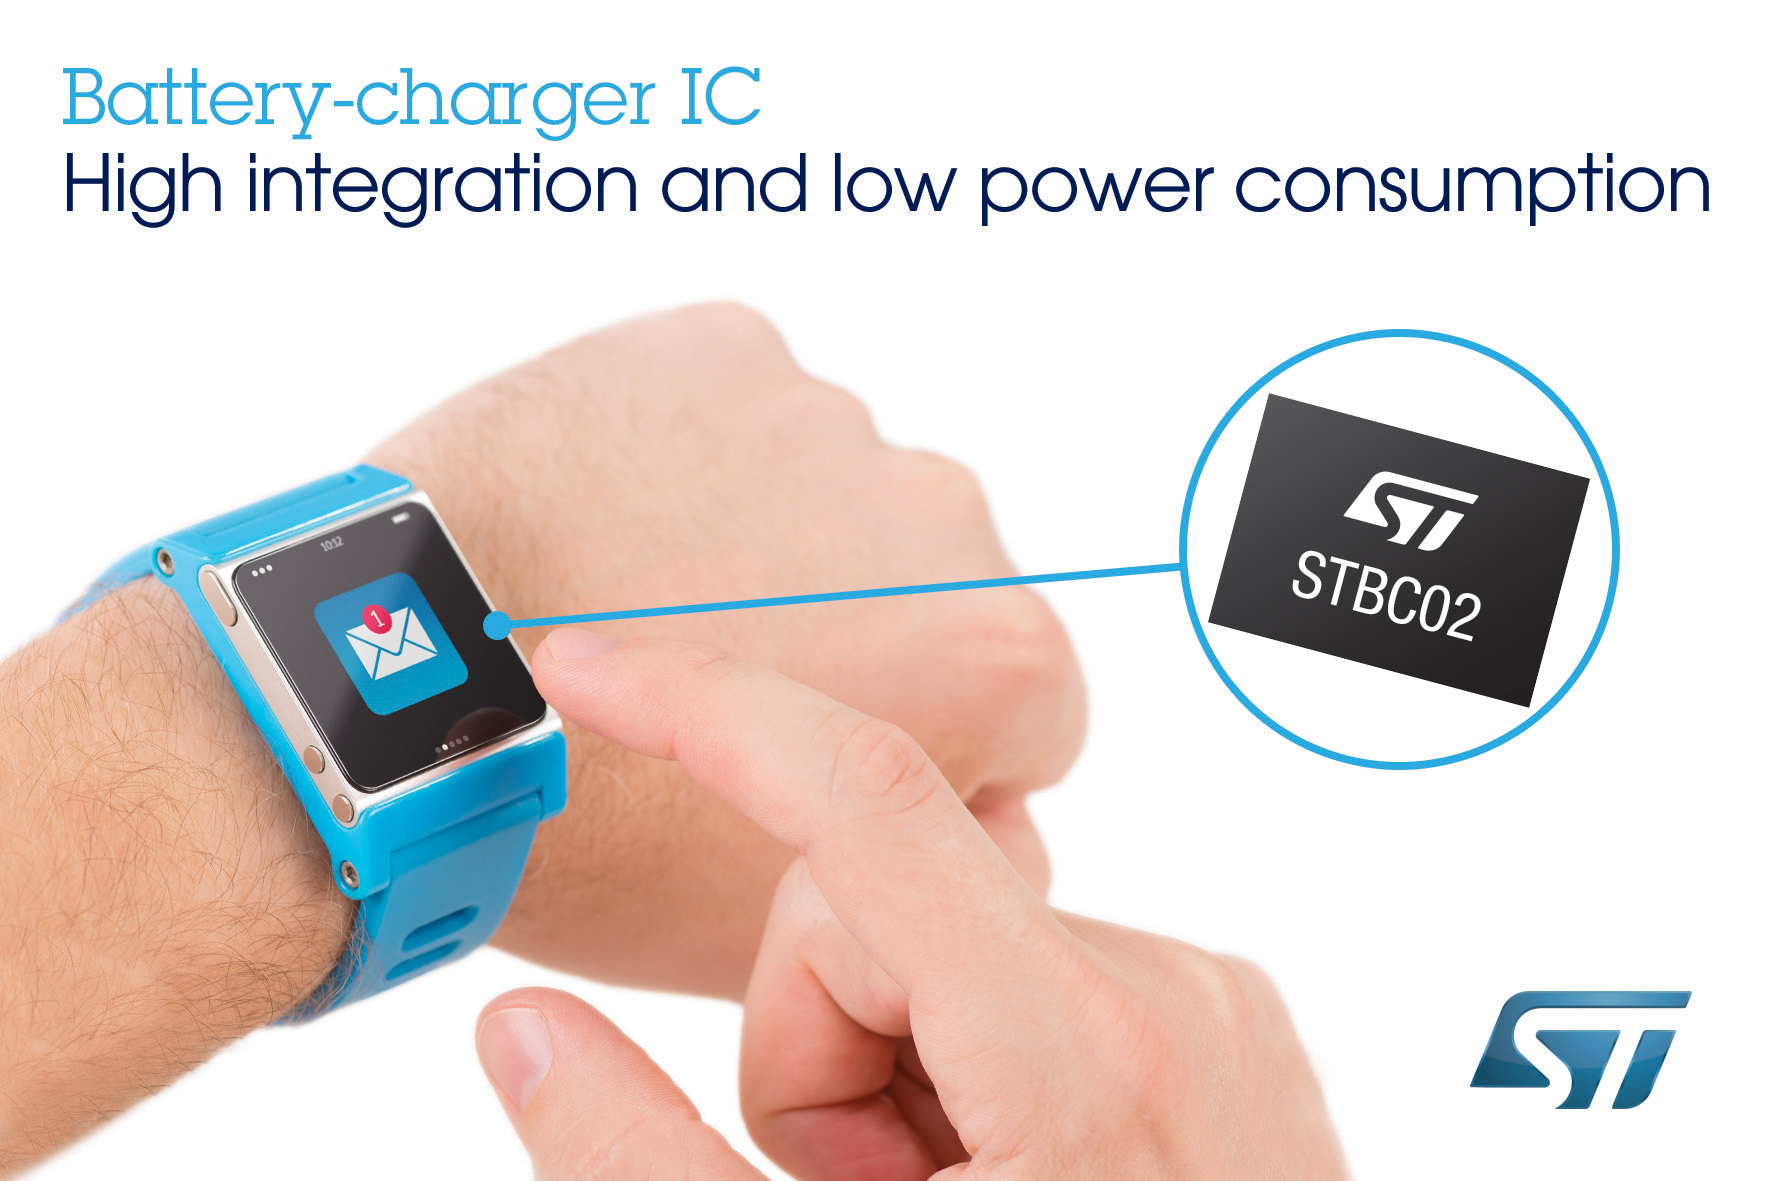 New Battery Charger Chip From Stmicroelectronics Reduces Cost And Energy Management For Portable Schematic Time To Market Wearable Applications